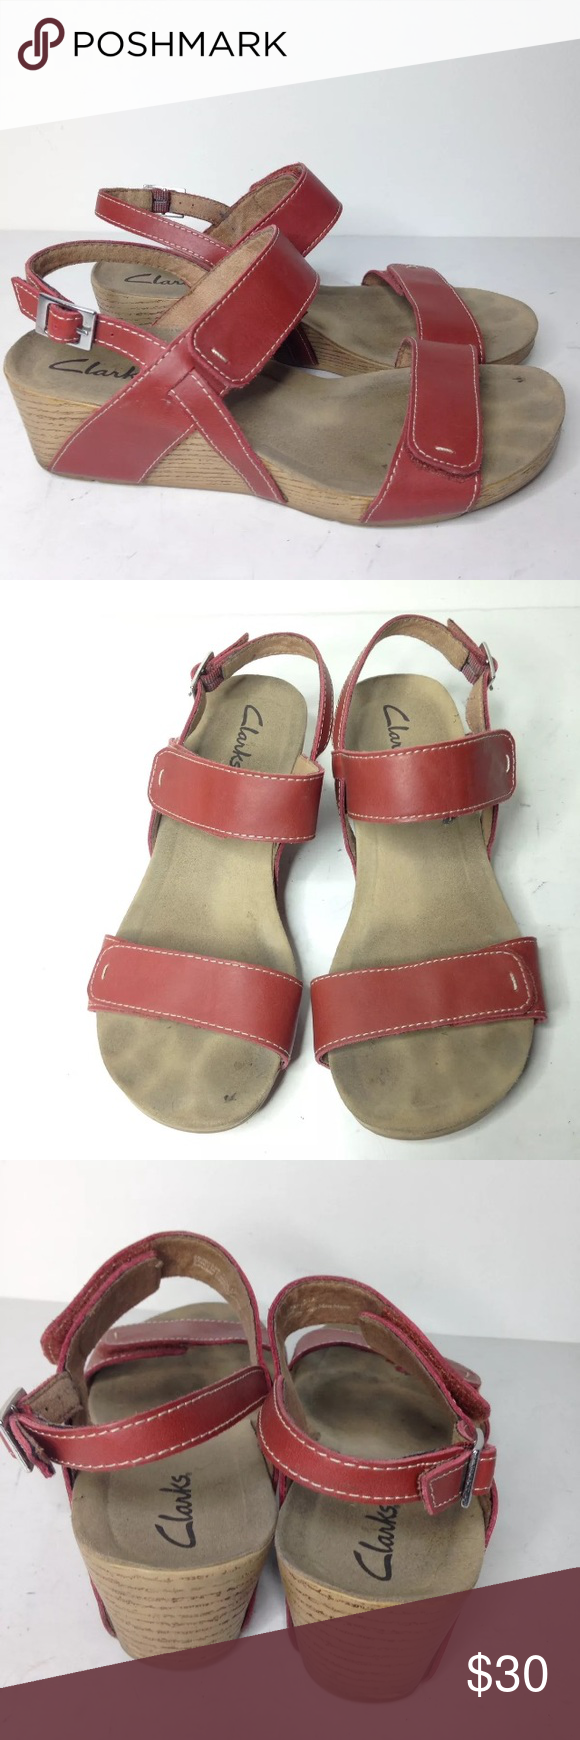 7fe62506cce Clarks red wedge adjustable sandals Alto Disco 7.5 Good used condition